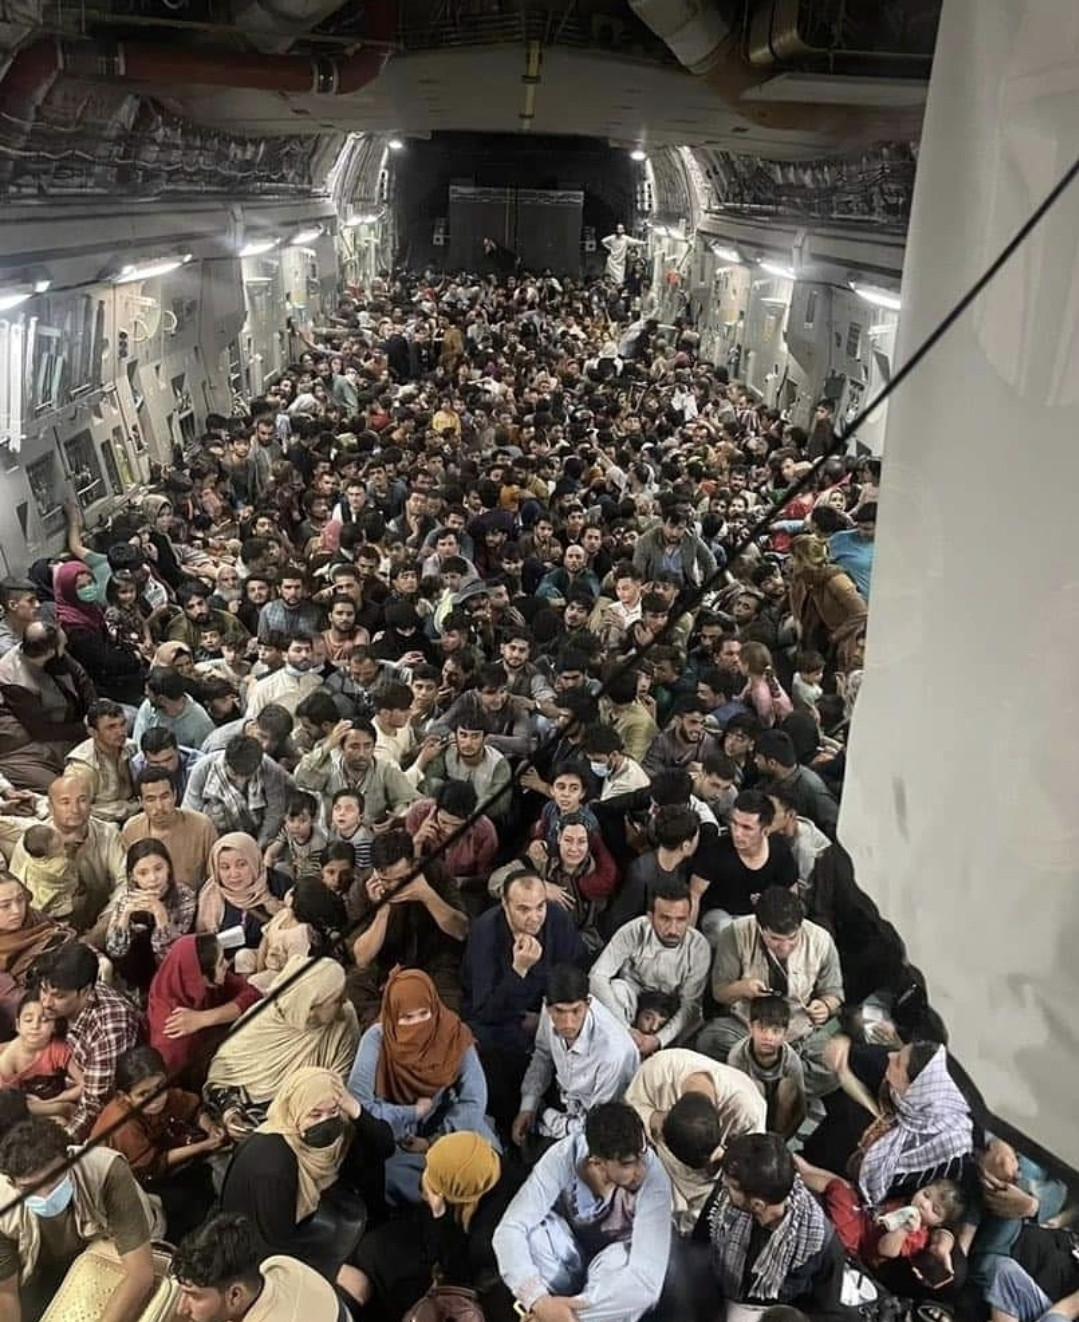 See photo showing inside a US military aircraft evacuating Afghans from Kabul to Qatar